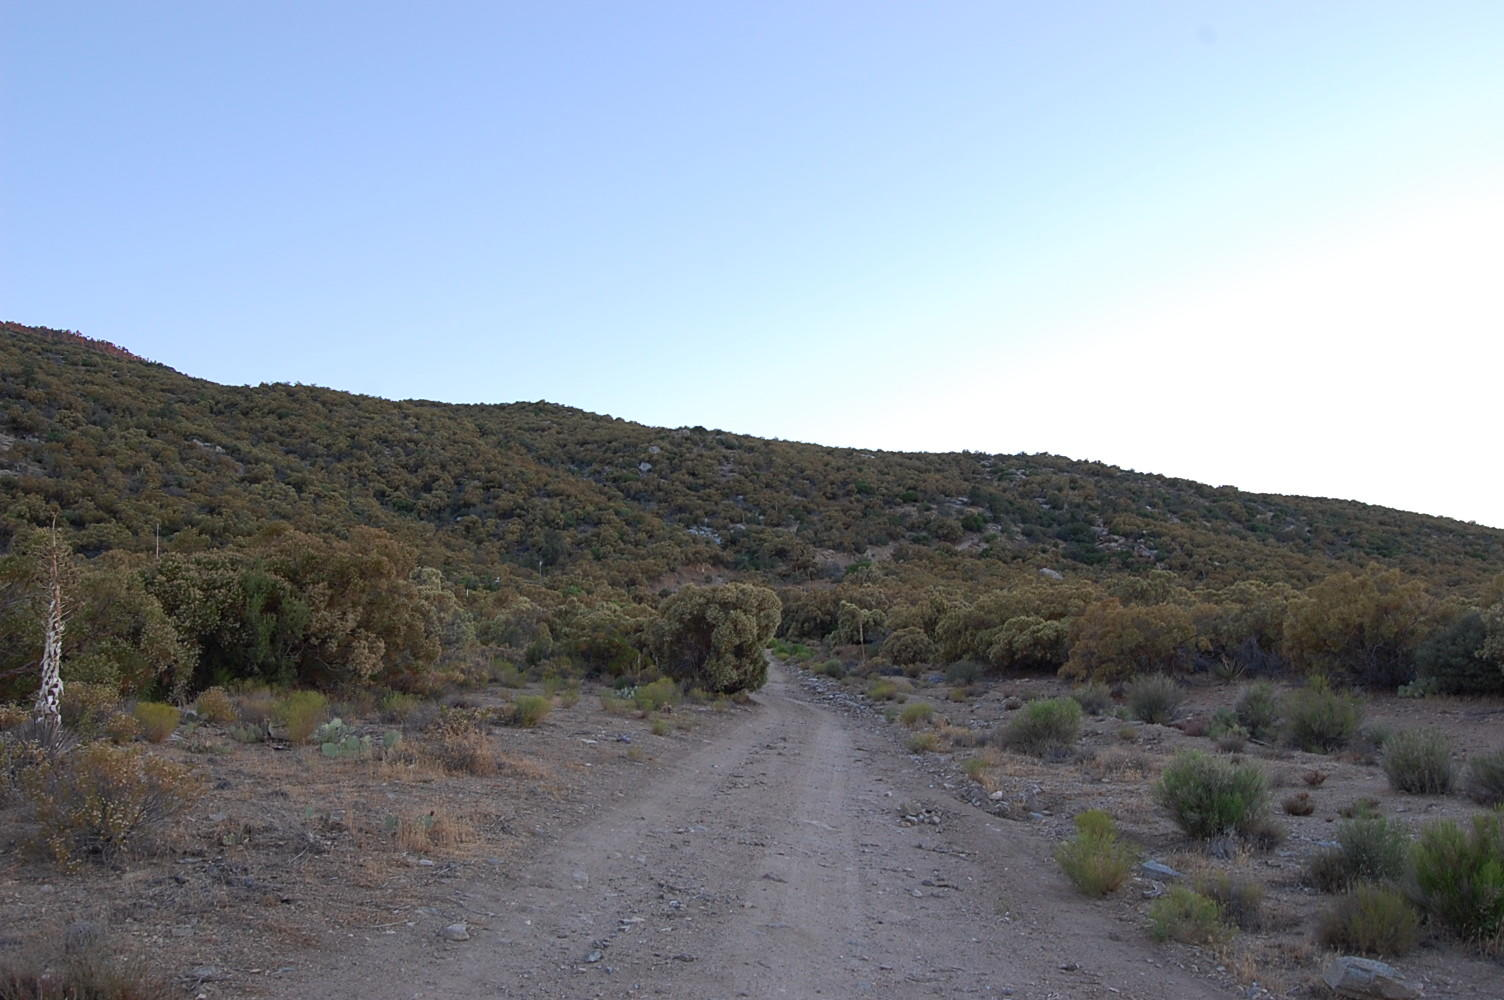 Magnificent 1 Acre Escape 45 minutes from Palm Springs - Image 3